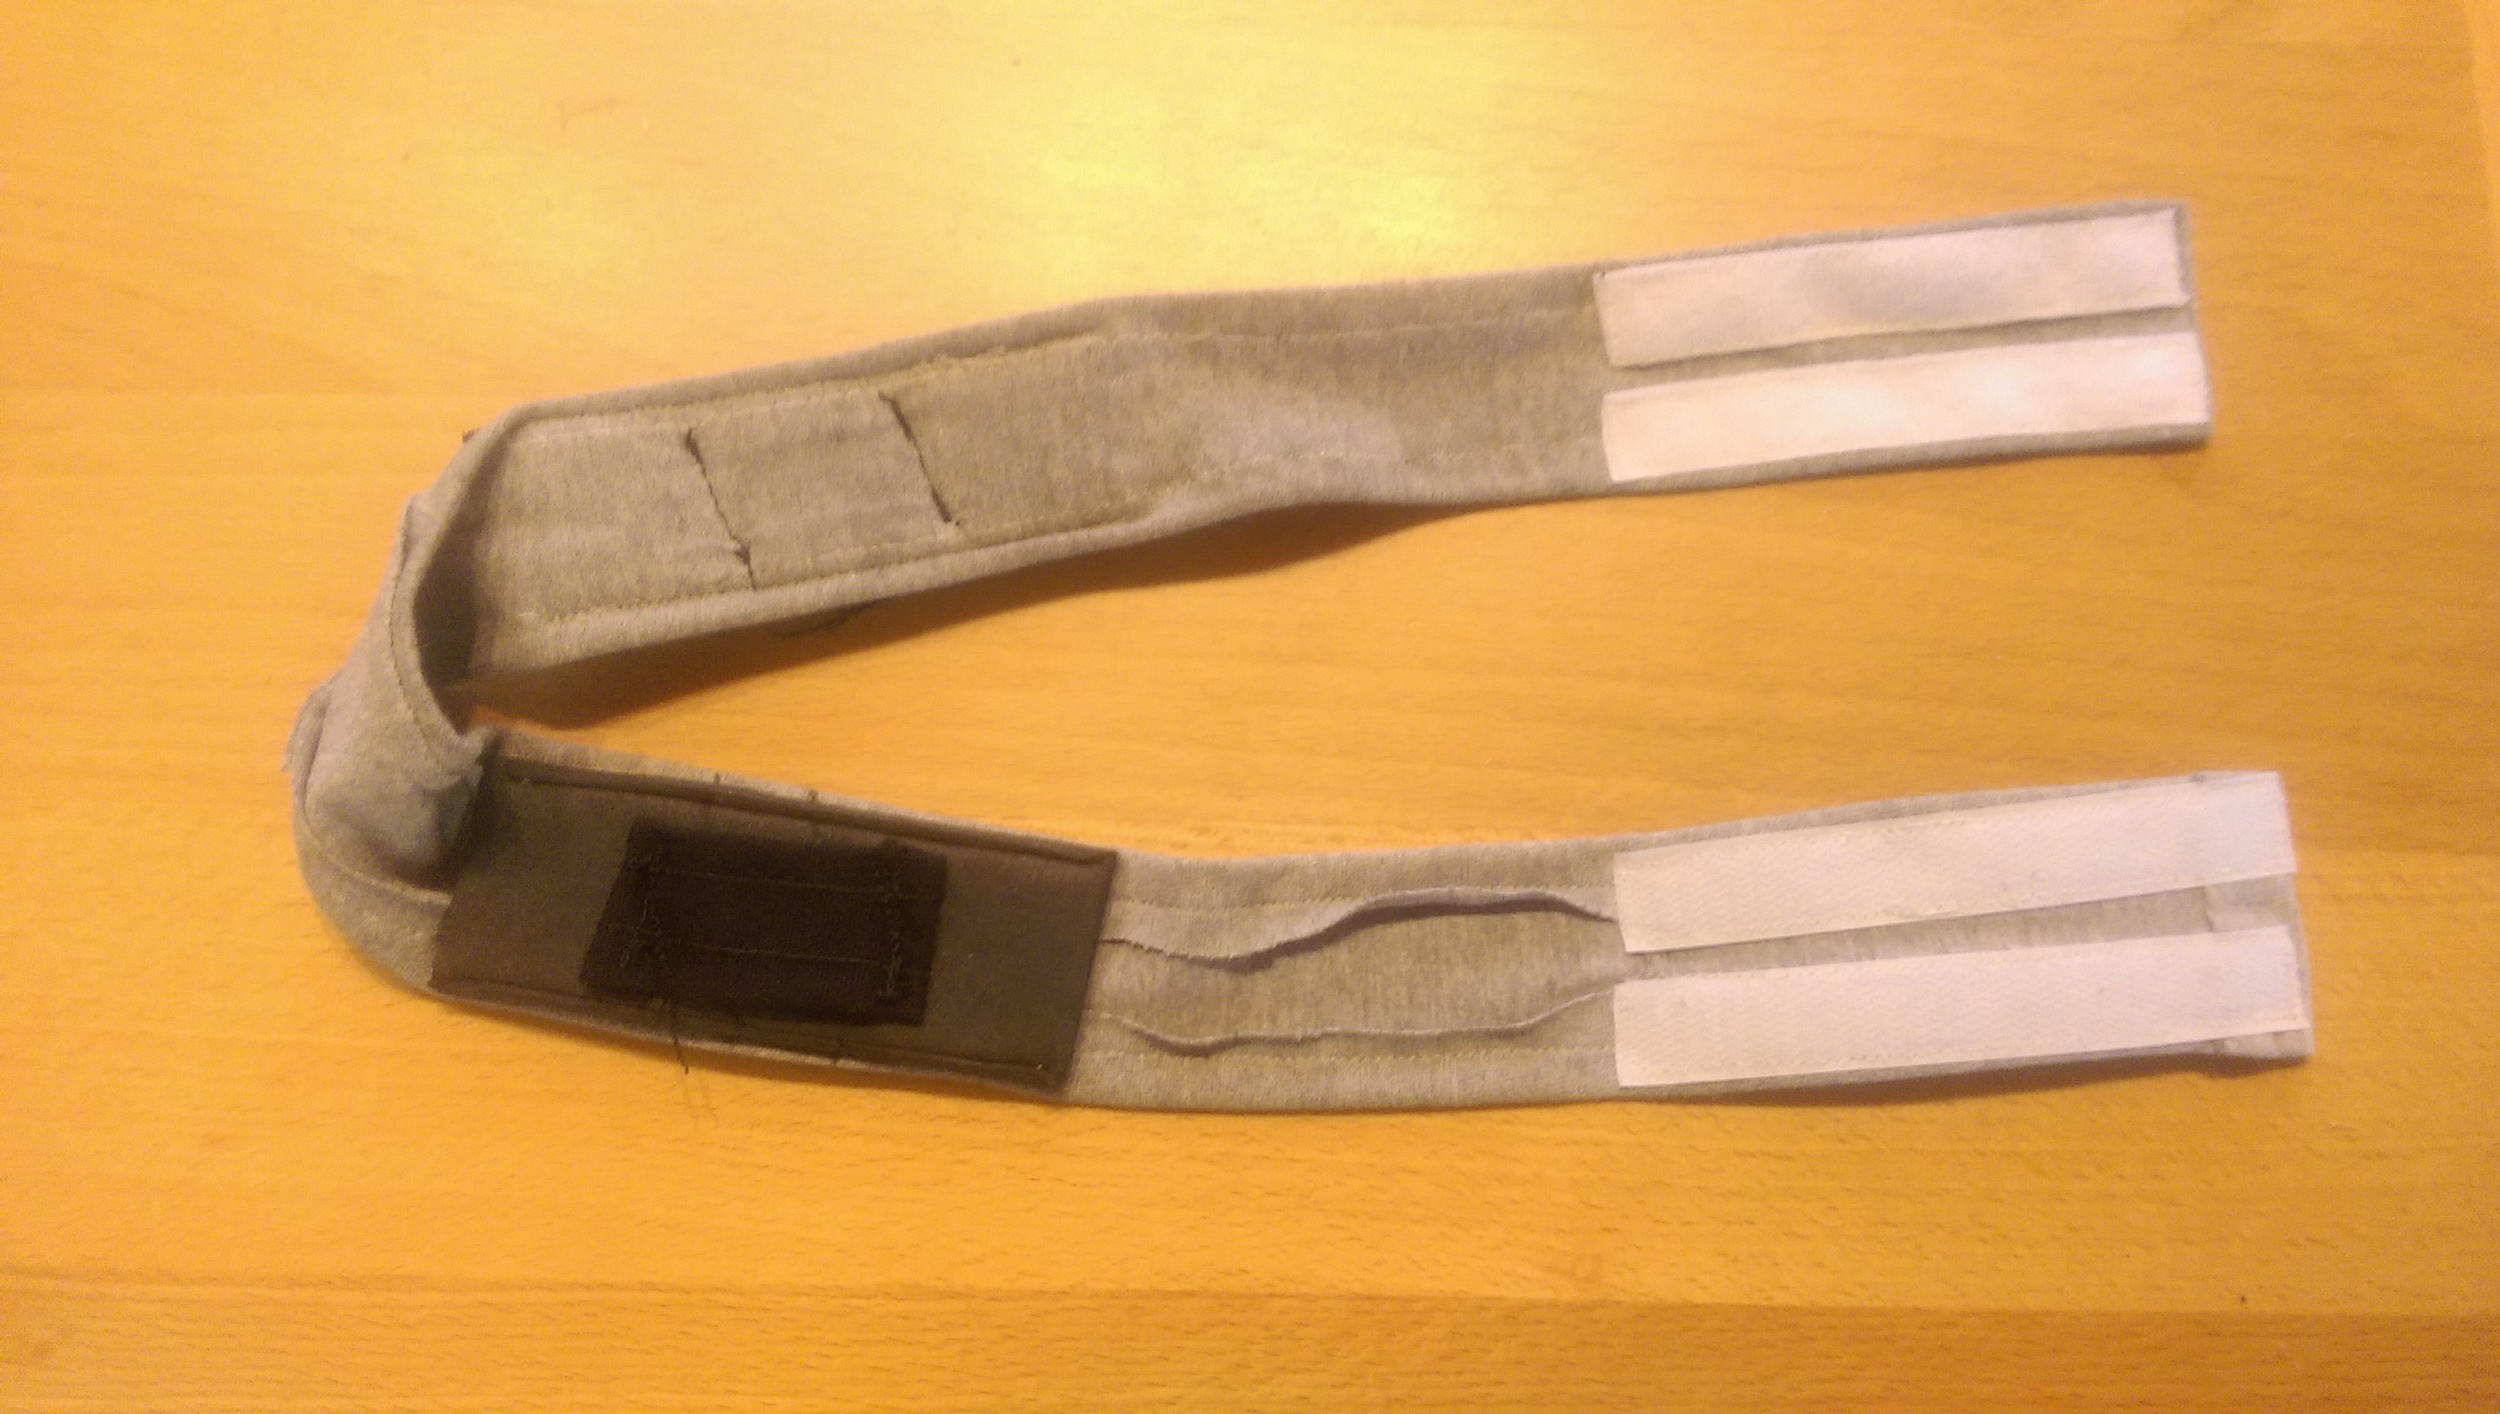 Finished headband showing the Velcro fasteners and the padded straps that wrap around the lever arms